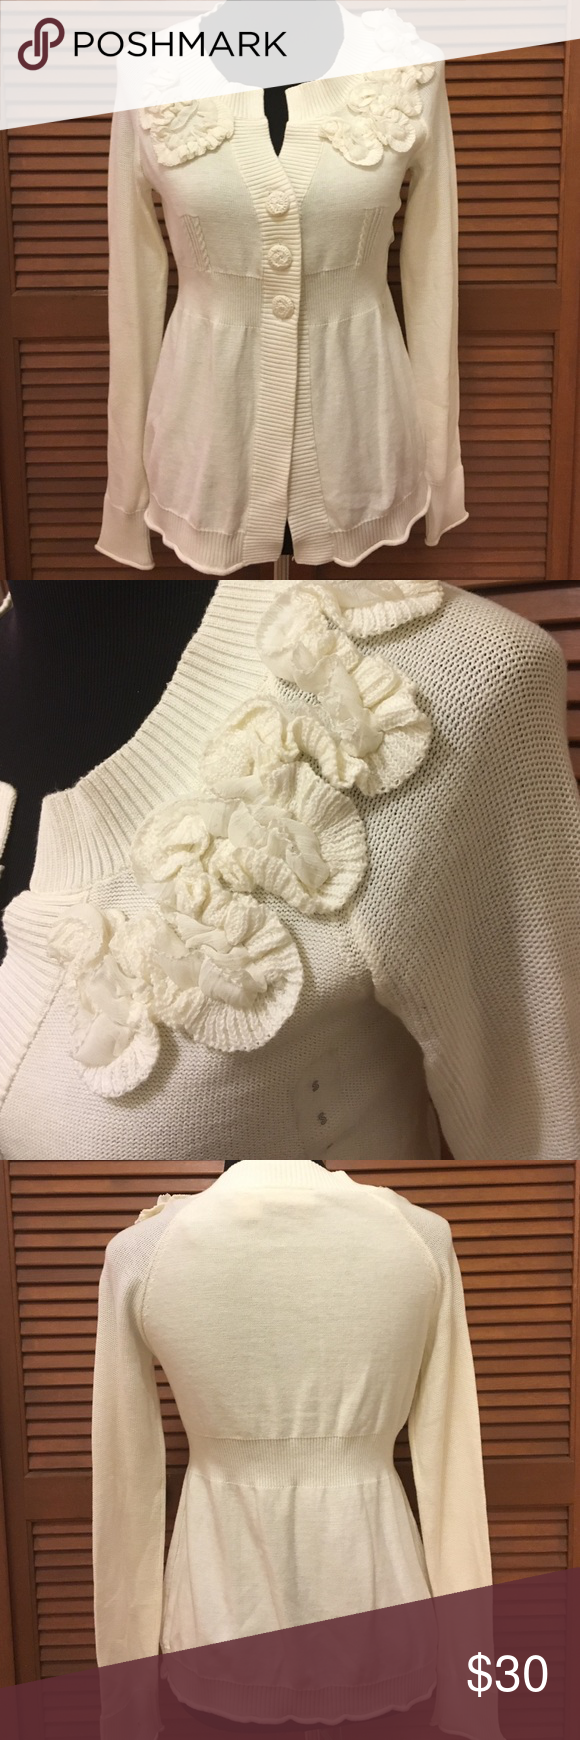 NWOT DKNY Jeans Cream embellished sweater S New without tags! Still has the size sticker on the front. Very flattering cut cream cardigan sweater. 100% cotton. DKNY Sweaters Cardigans